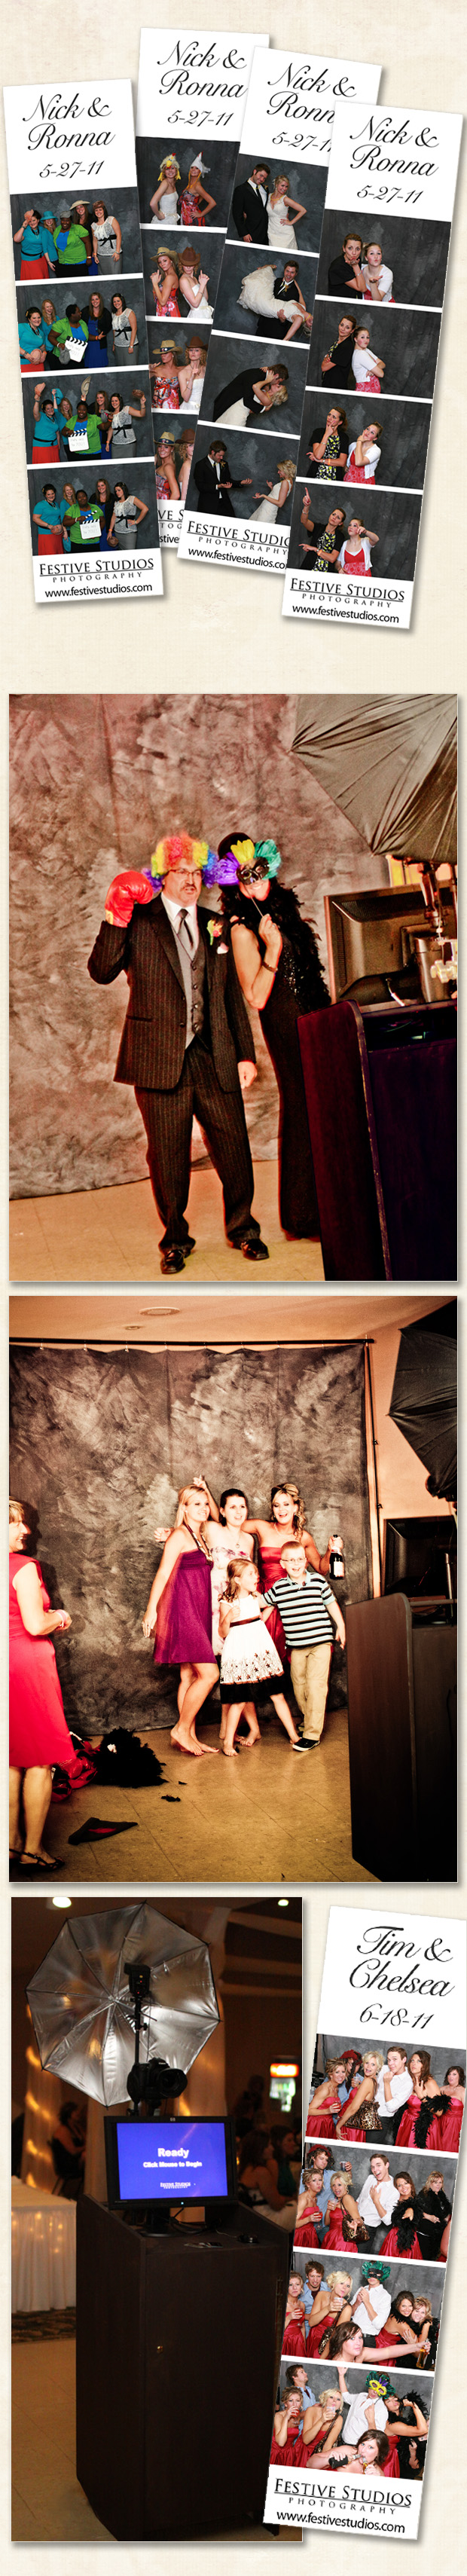 Photobooths in Sioux Falls